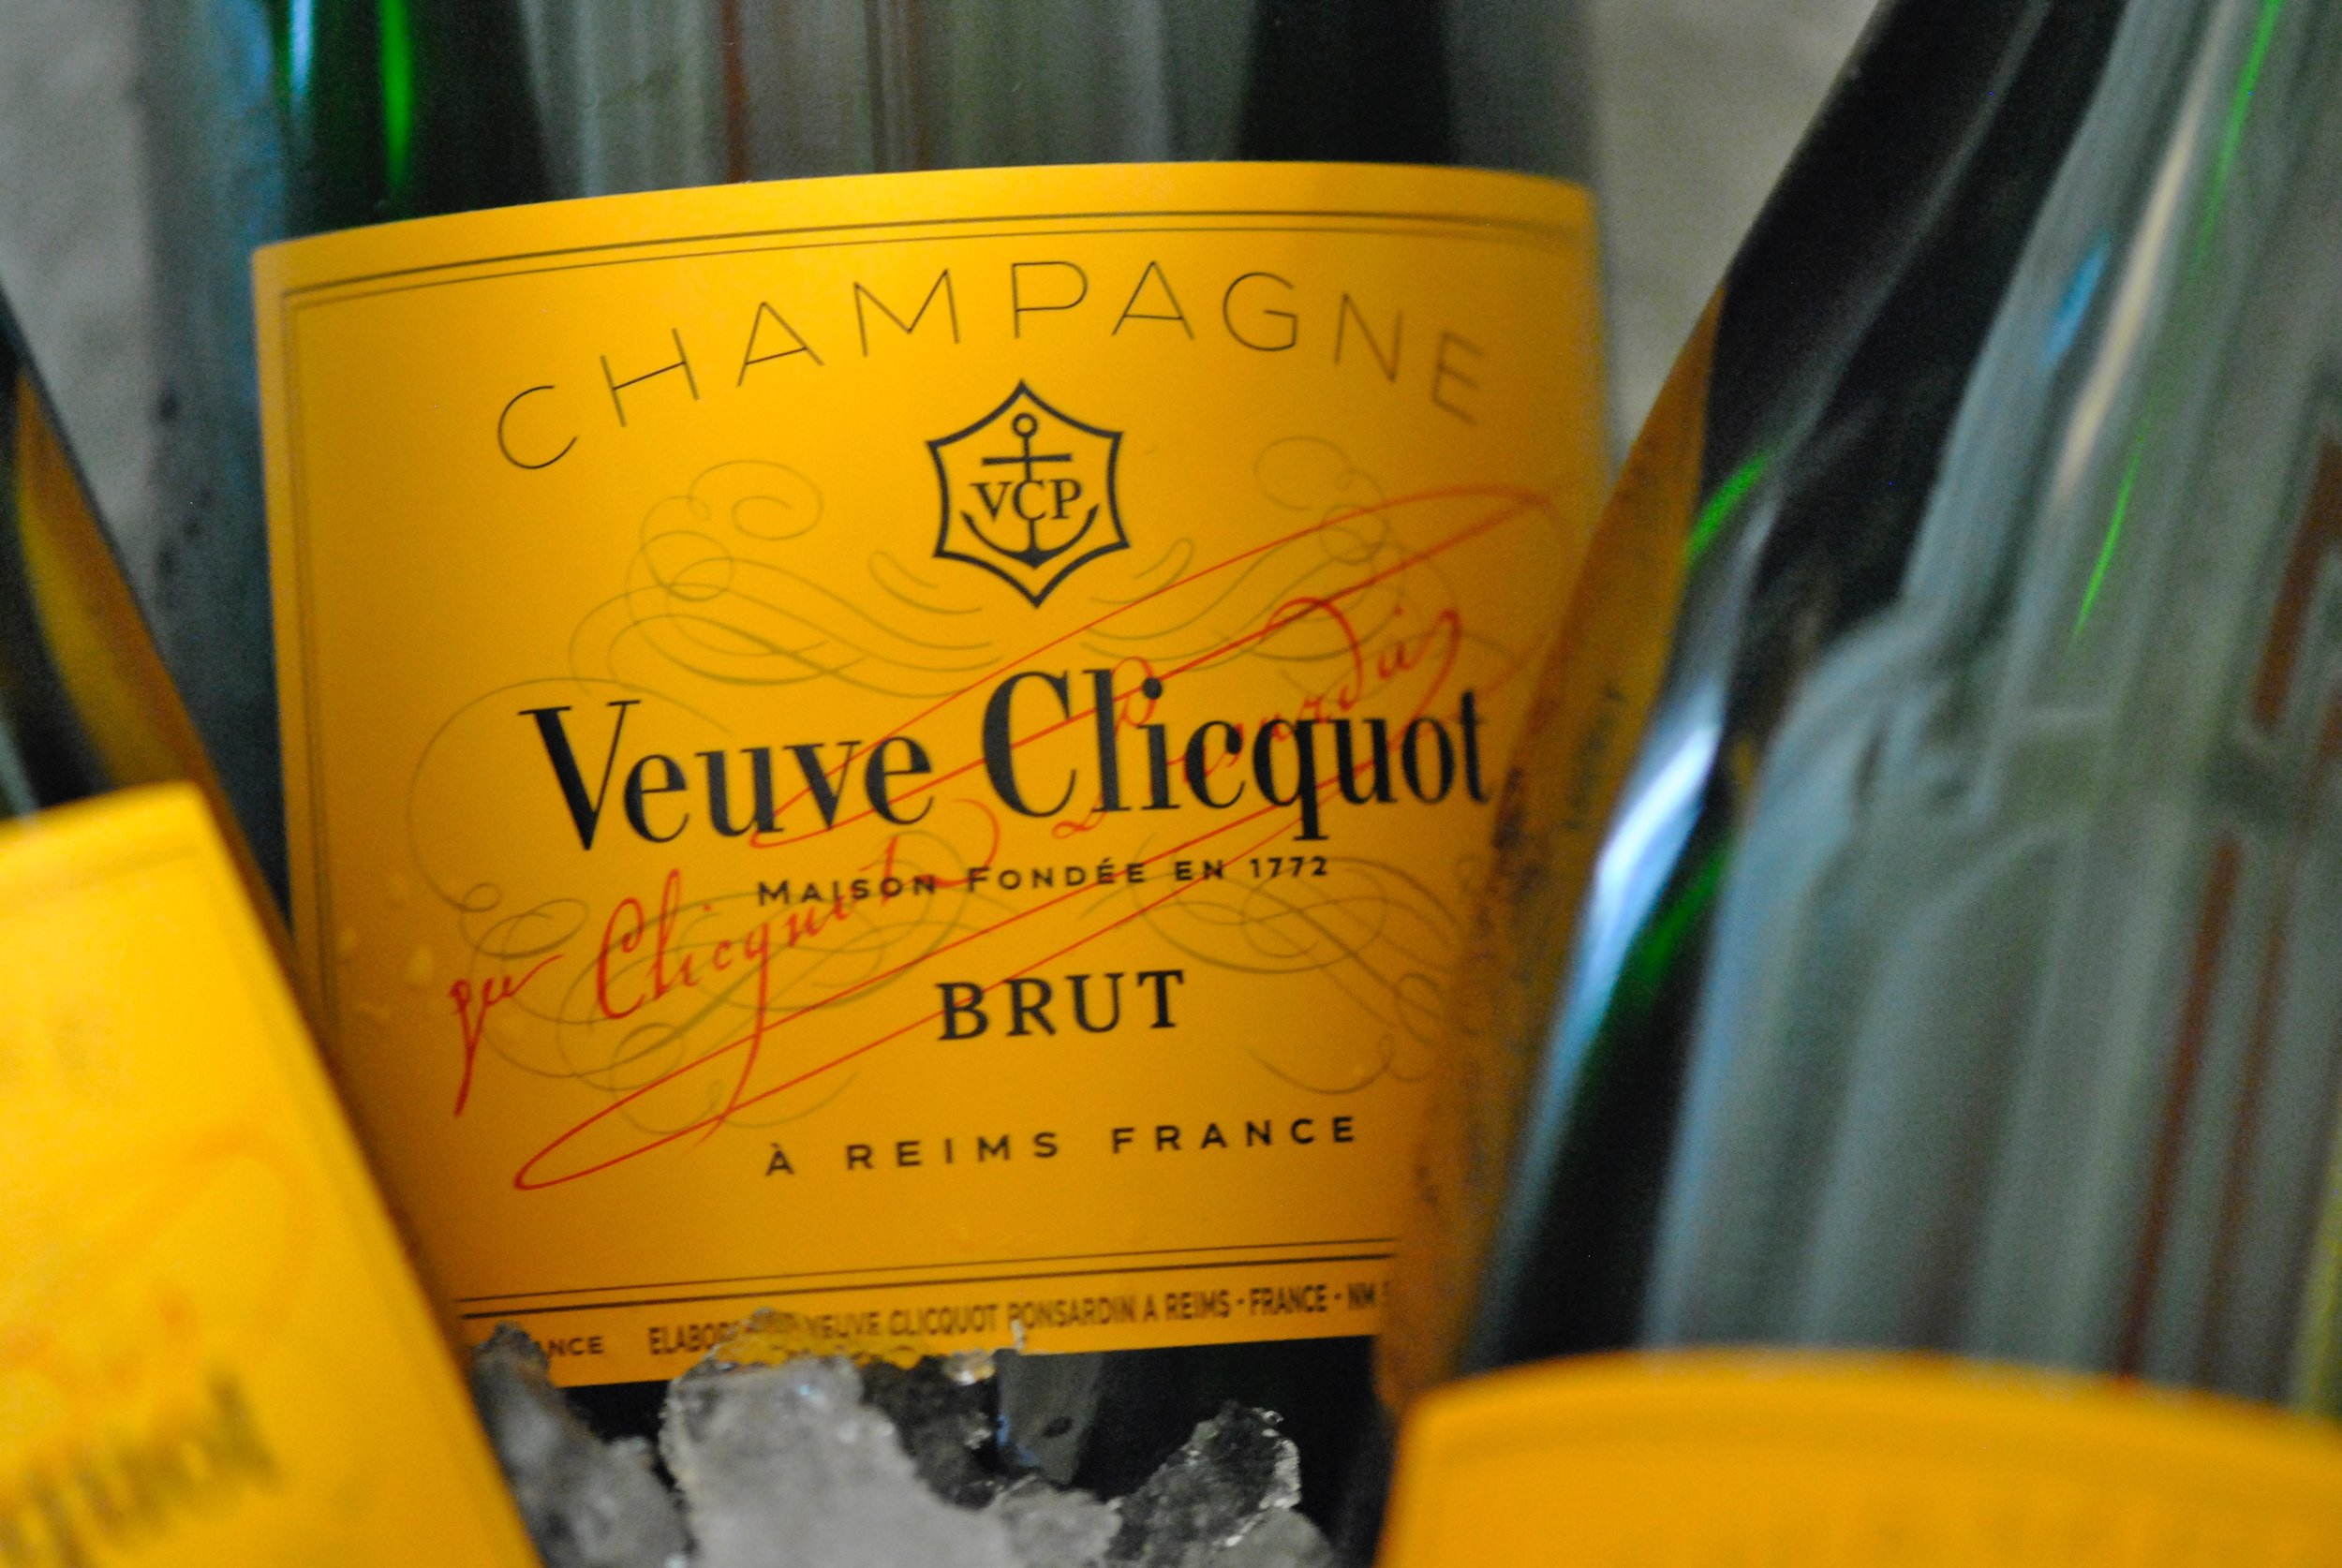 CHAMPAGNE & WINE   We've got an awesome selection of Champagne, including; Veuve Clicquot, Ruinart, Krug & Dom Perignon along with great wine from around the world. Check the full list  HERE